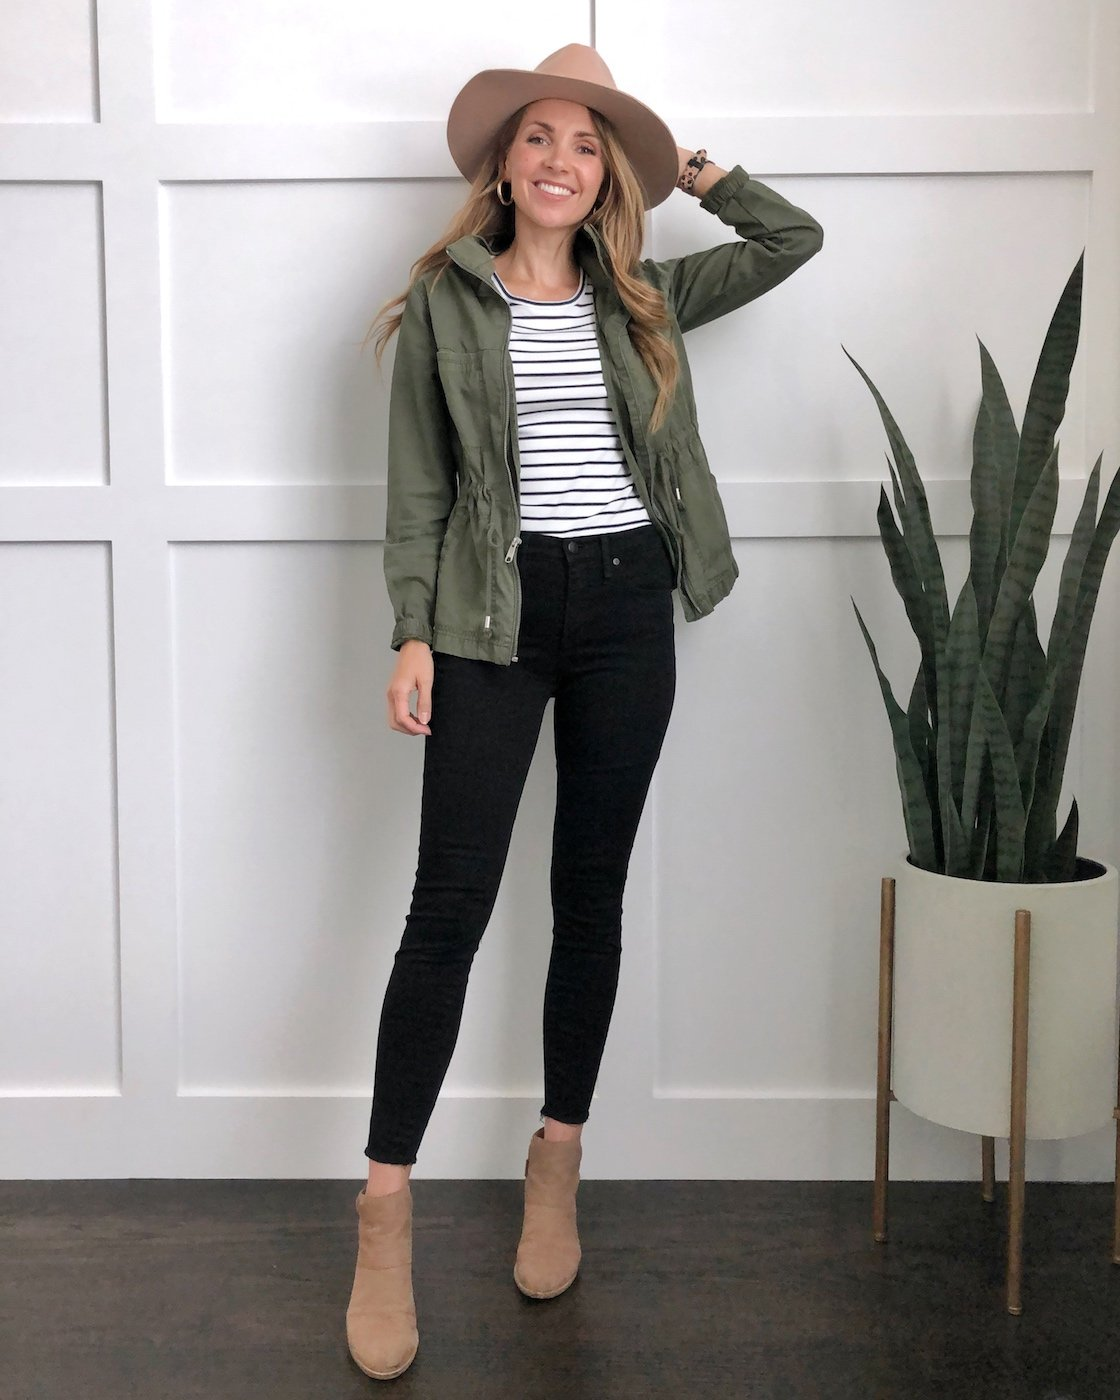 olive jacket with striped tee and ankle boots